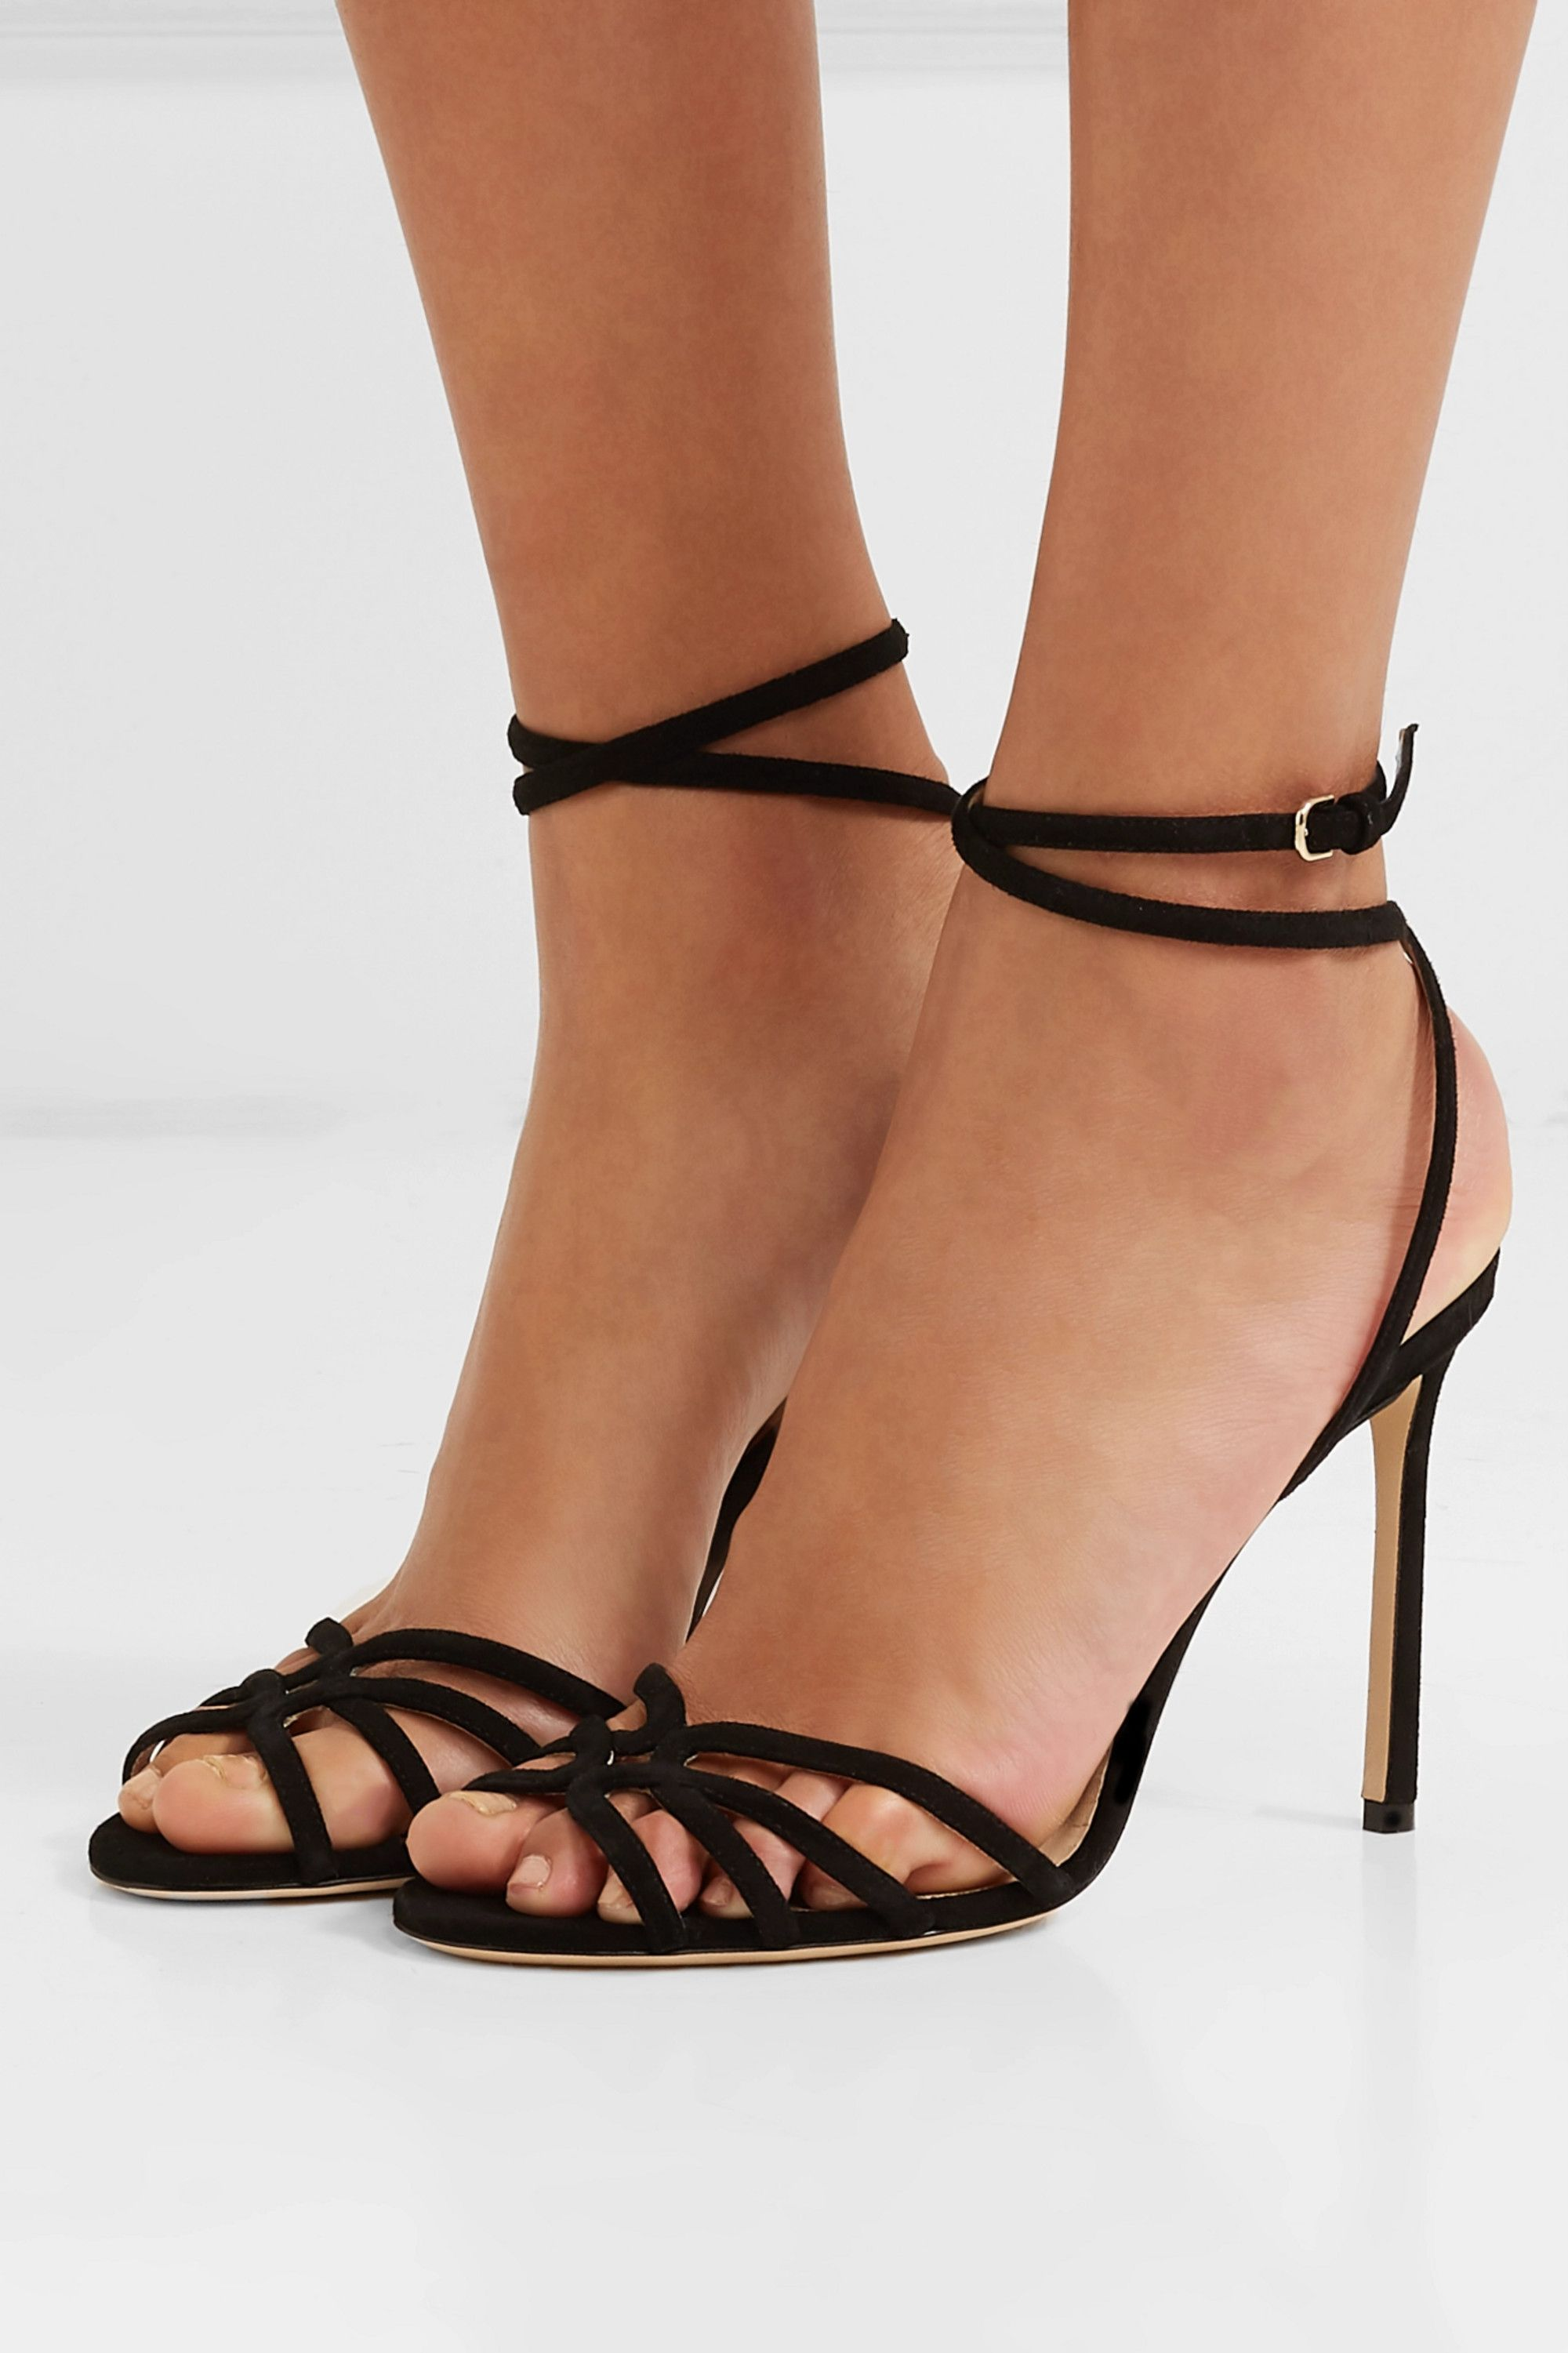 Trendy High Heel Shoes Good Shoes Navy Blue Shoes Heels